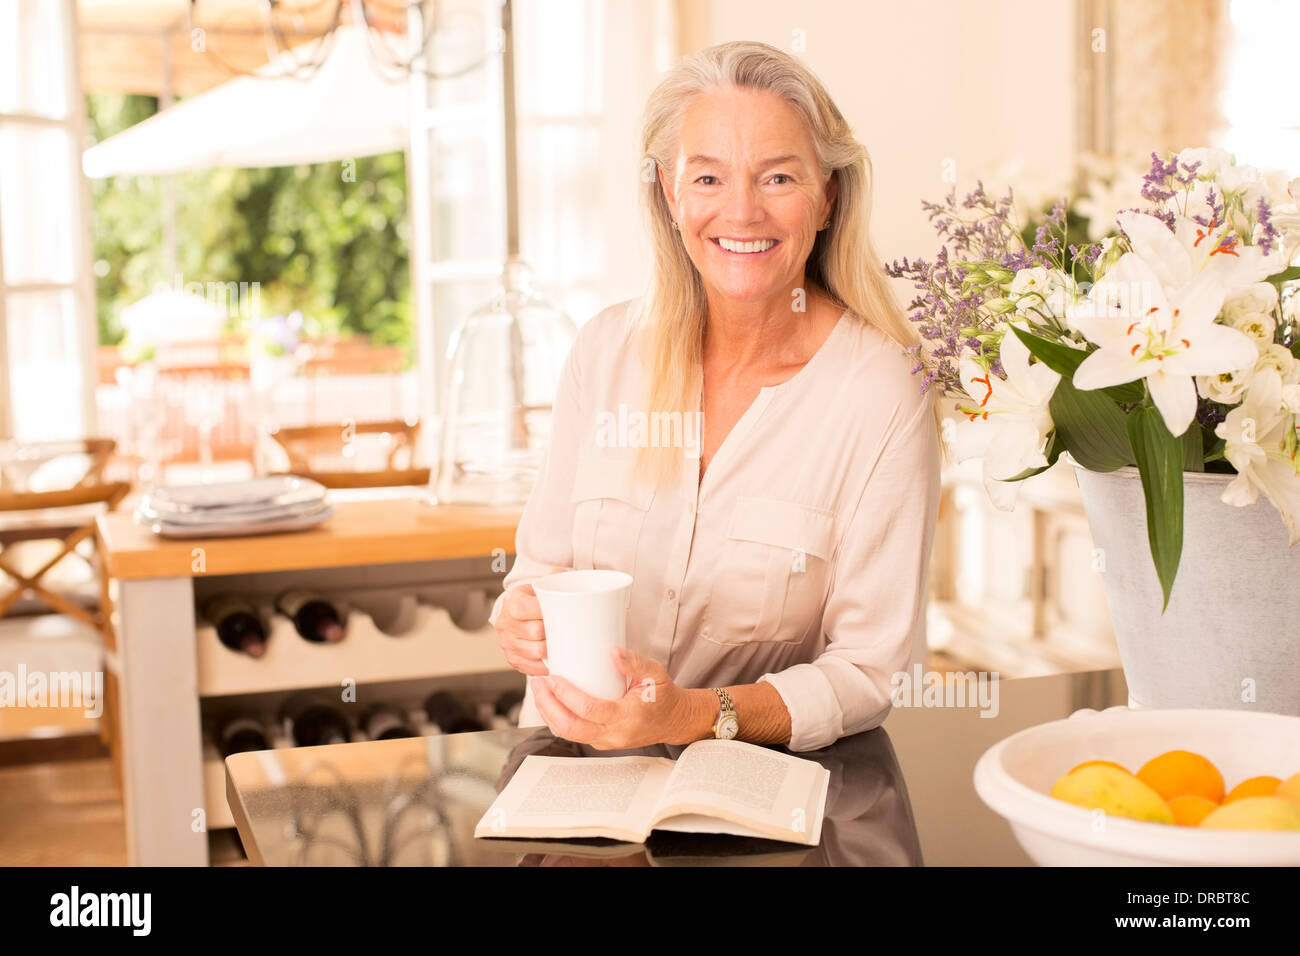 Senior woman drinking coffee and reading book in kitchen Stock Photo